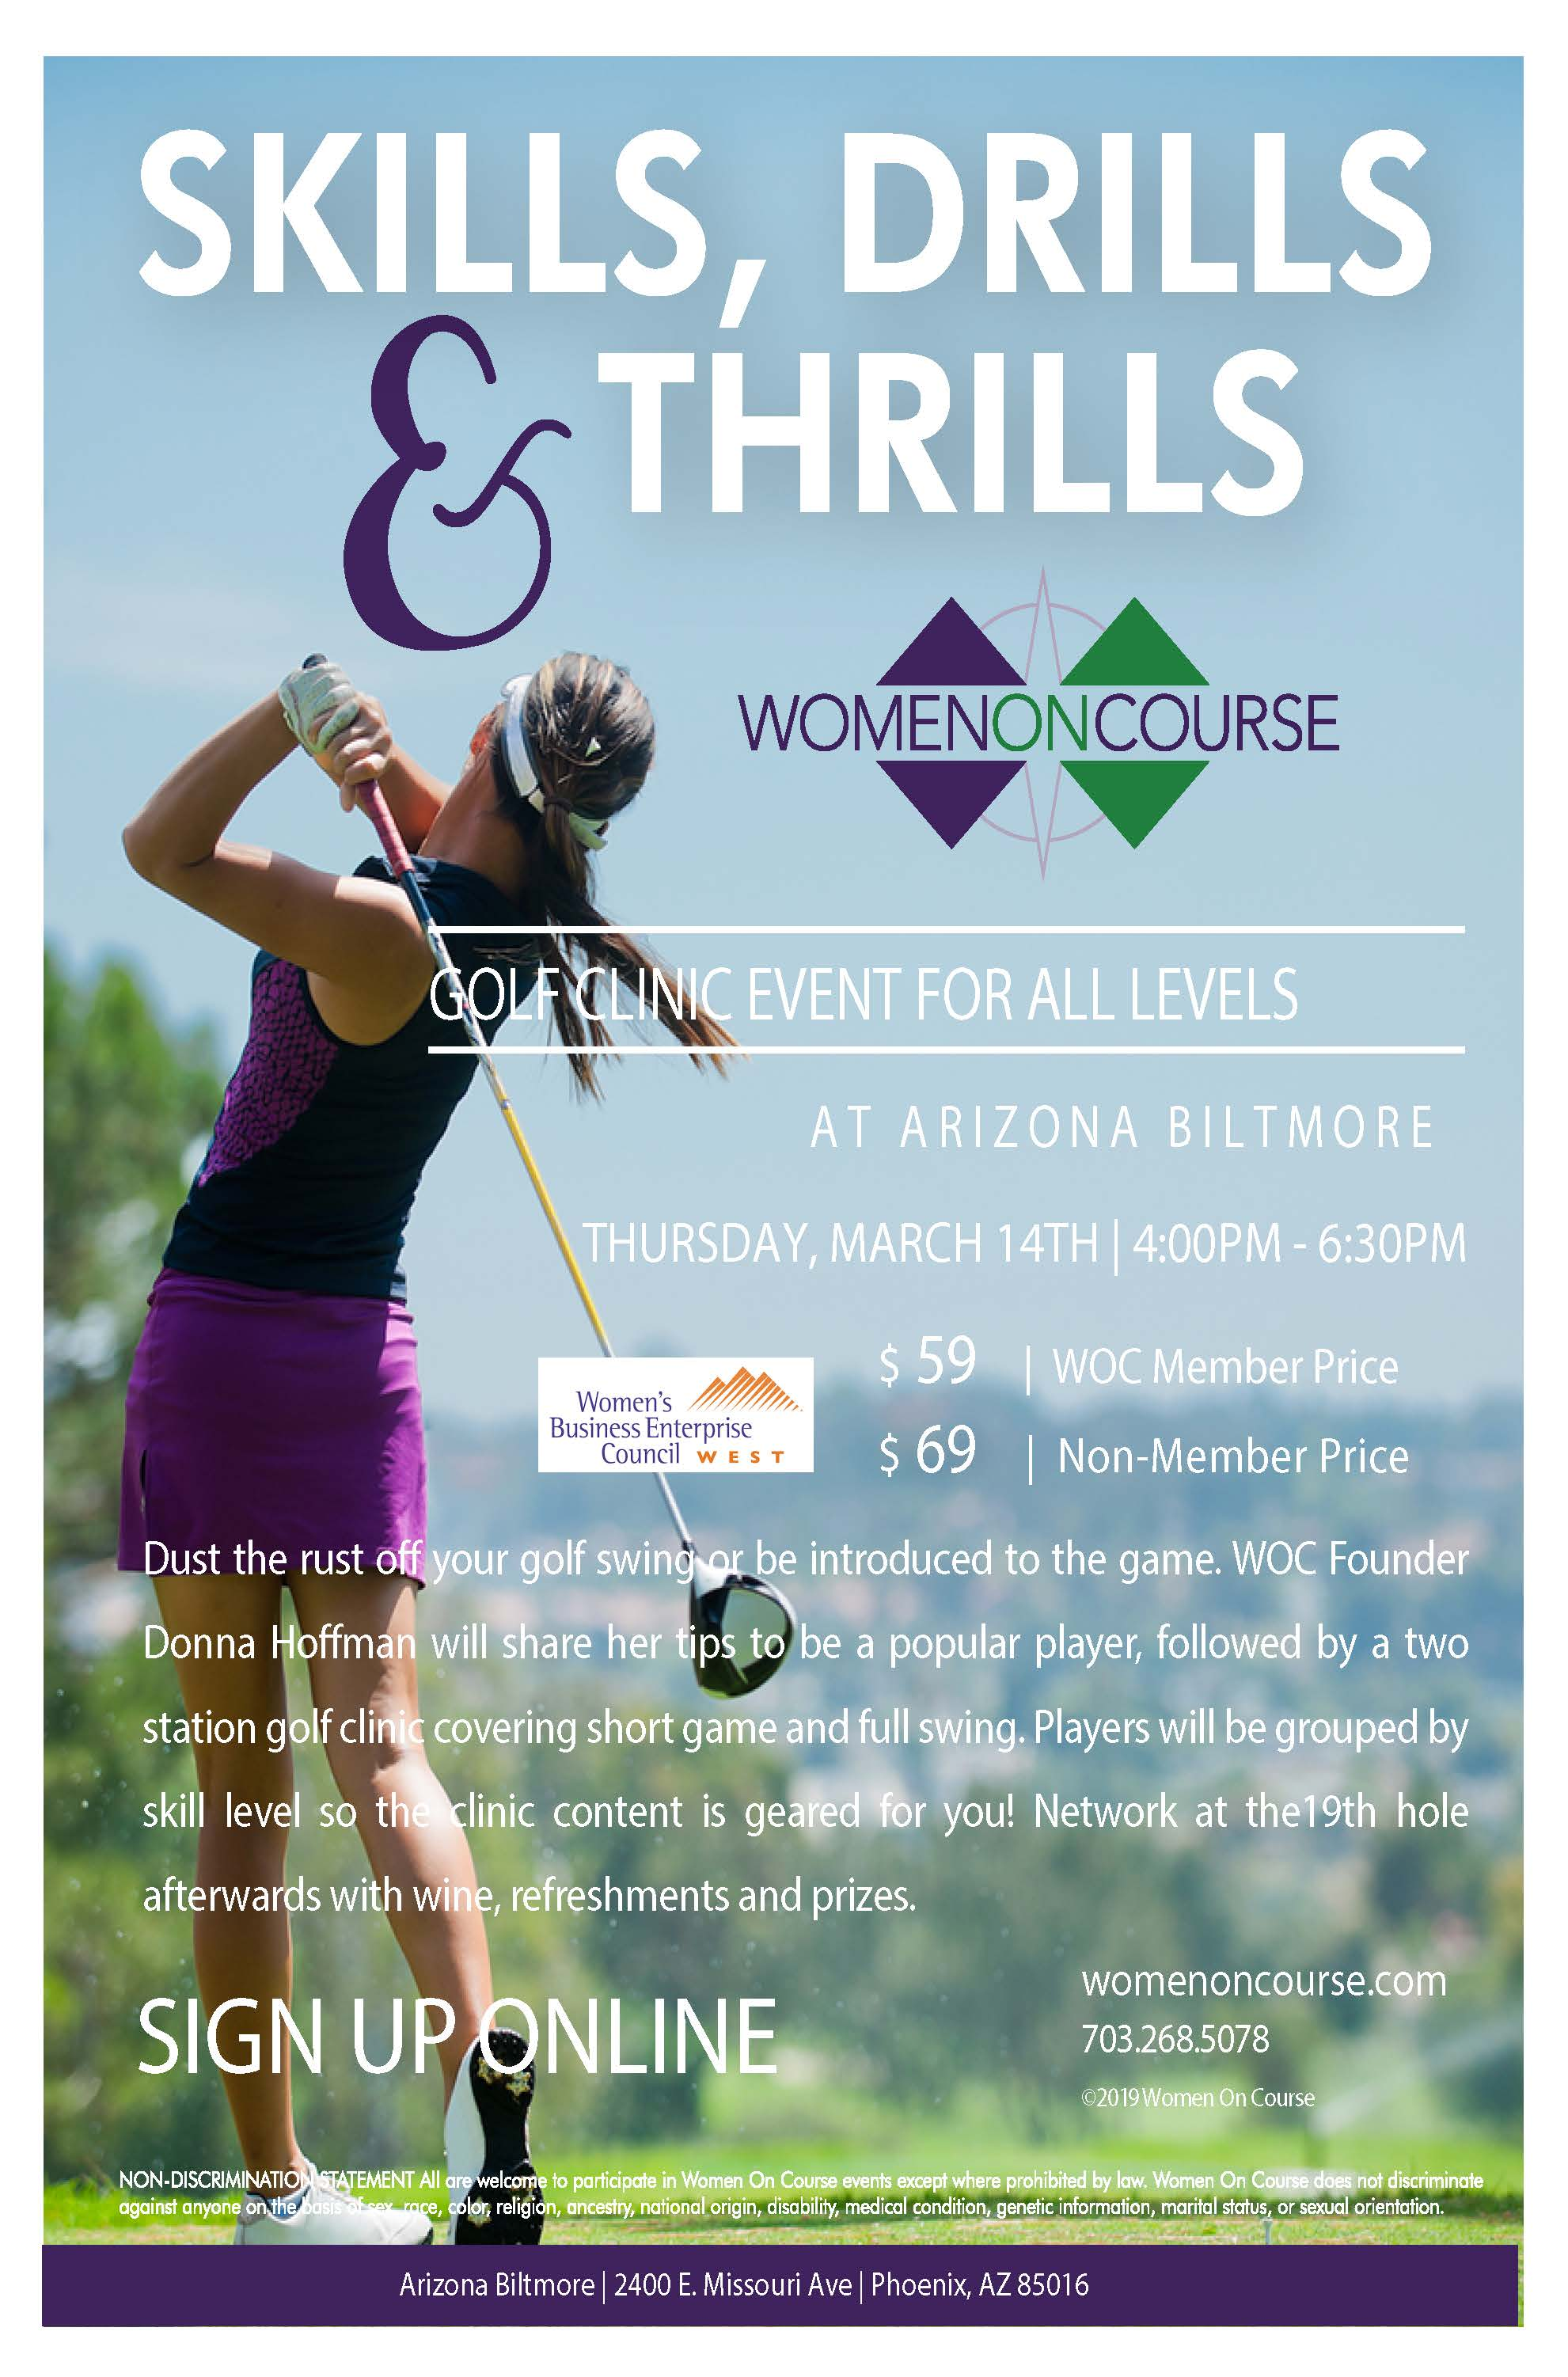 Skills, Drills and Thrills - Women on Course